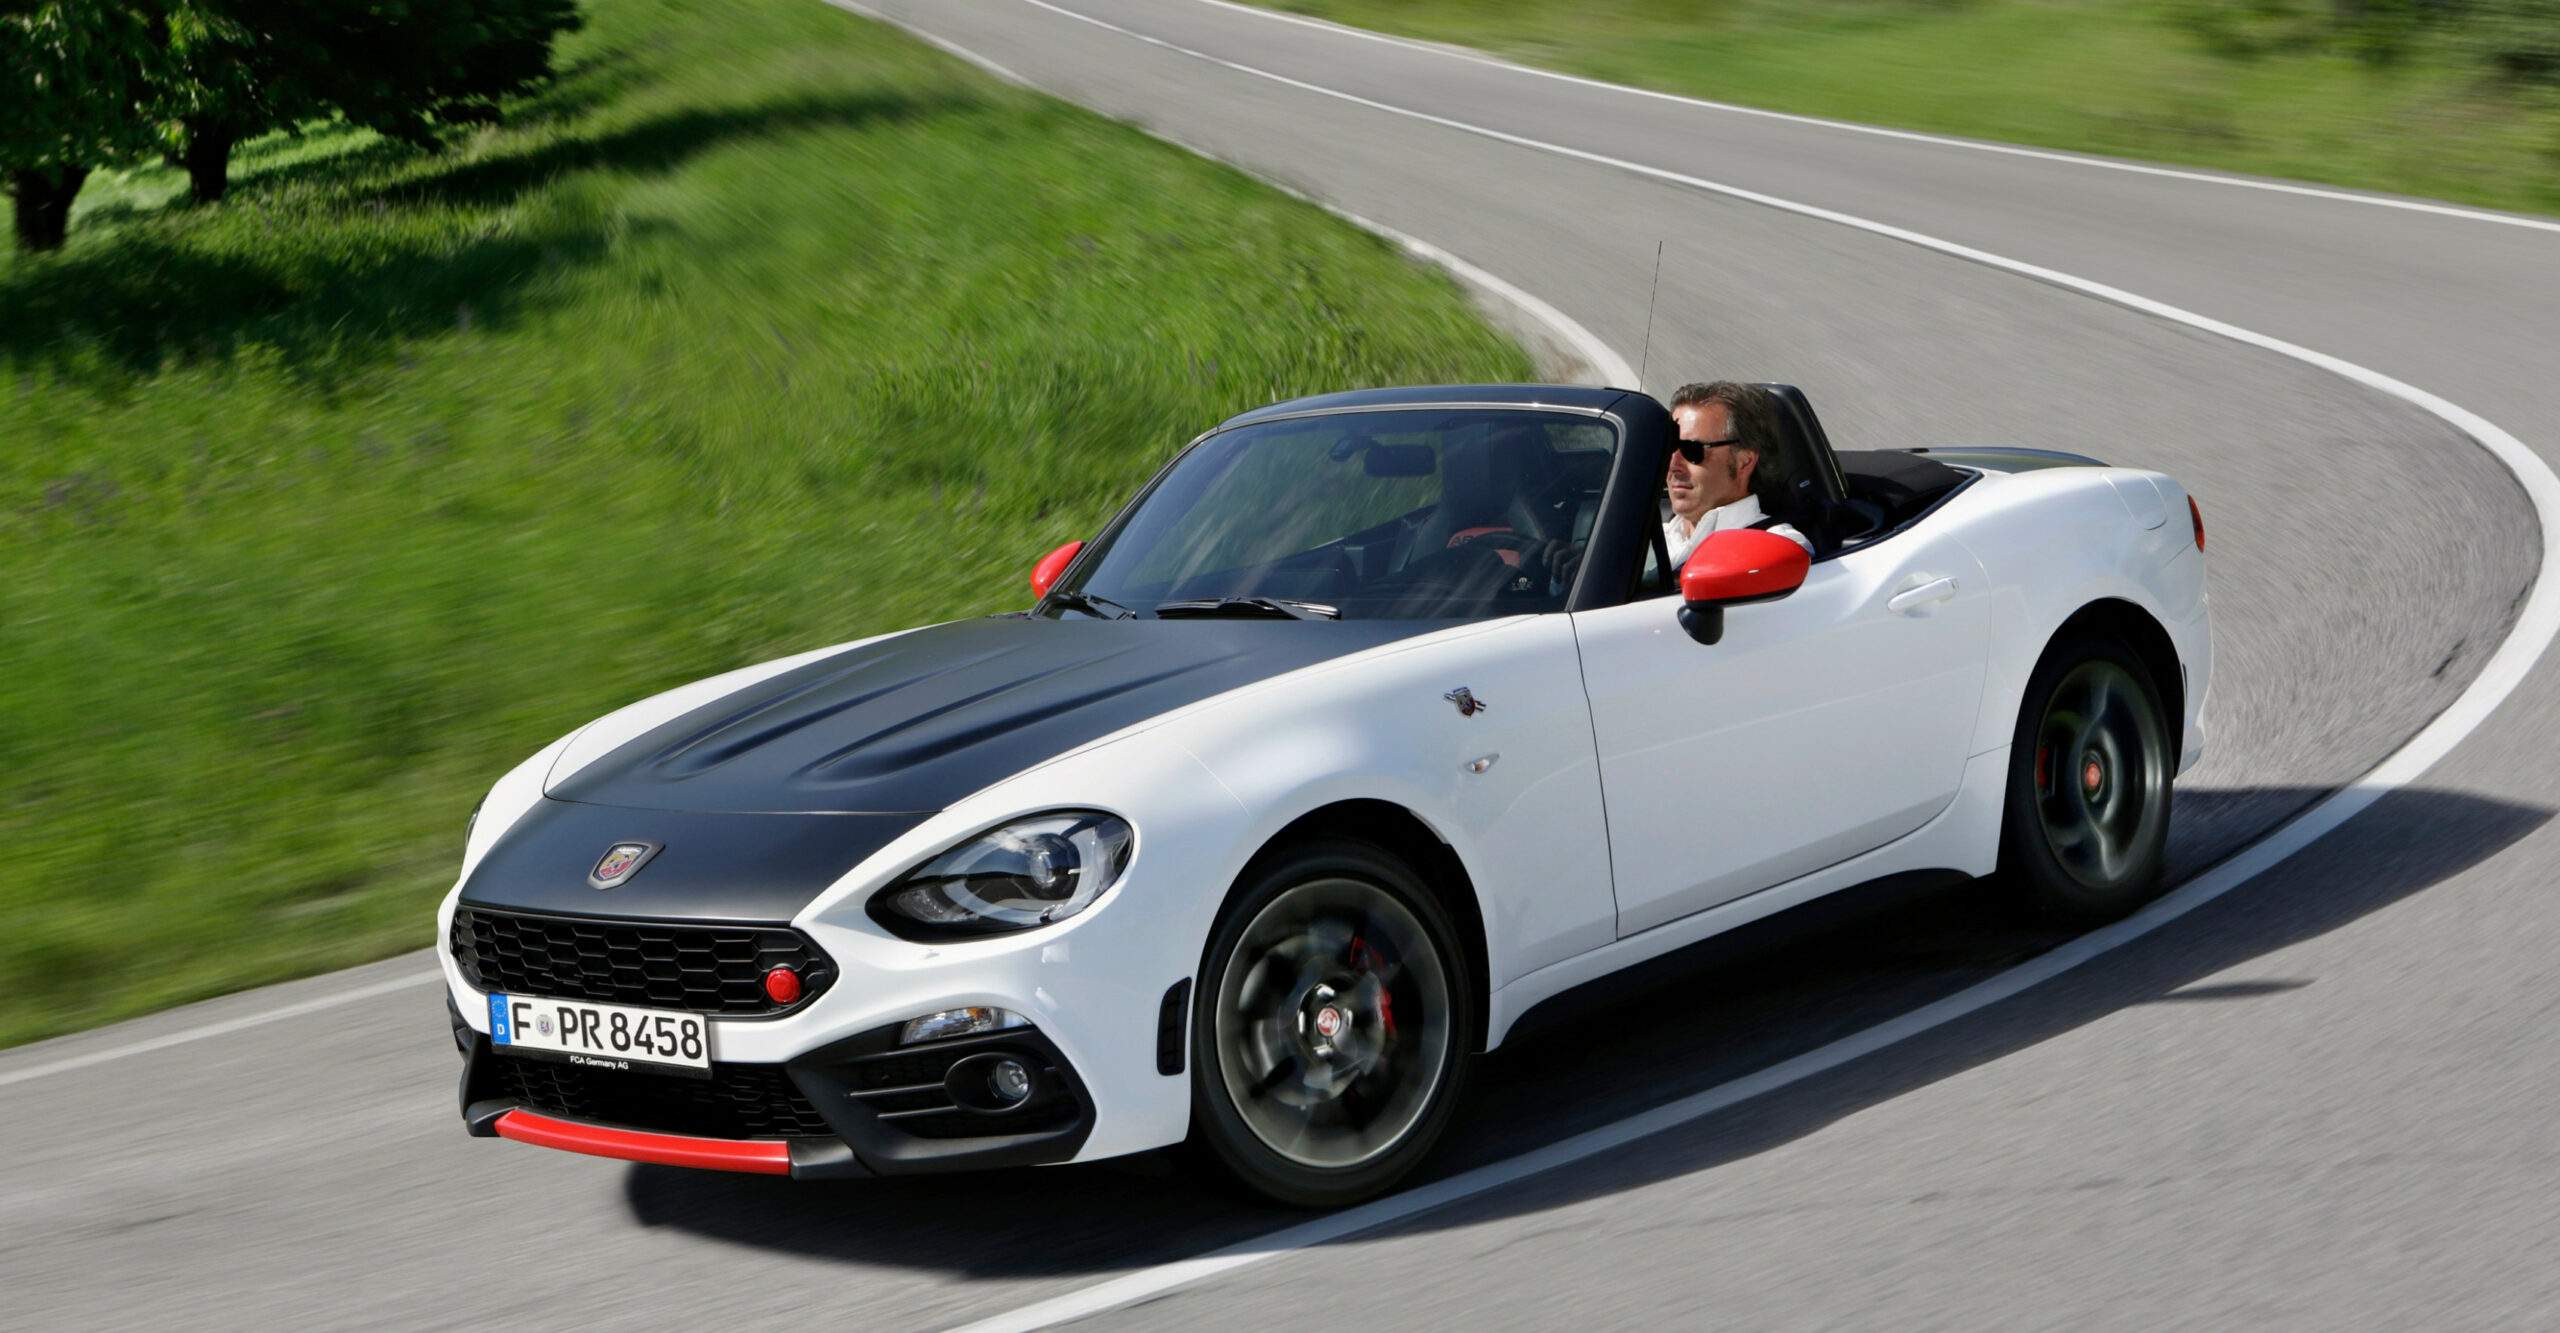 Roadster-Feeling: Fiat Spider: Topfit in die Open-Air-Saison - MOZ.de